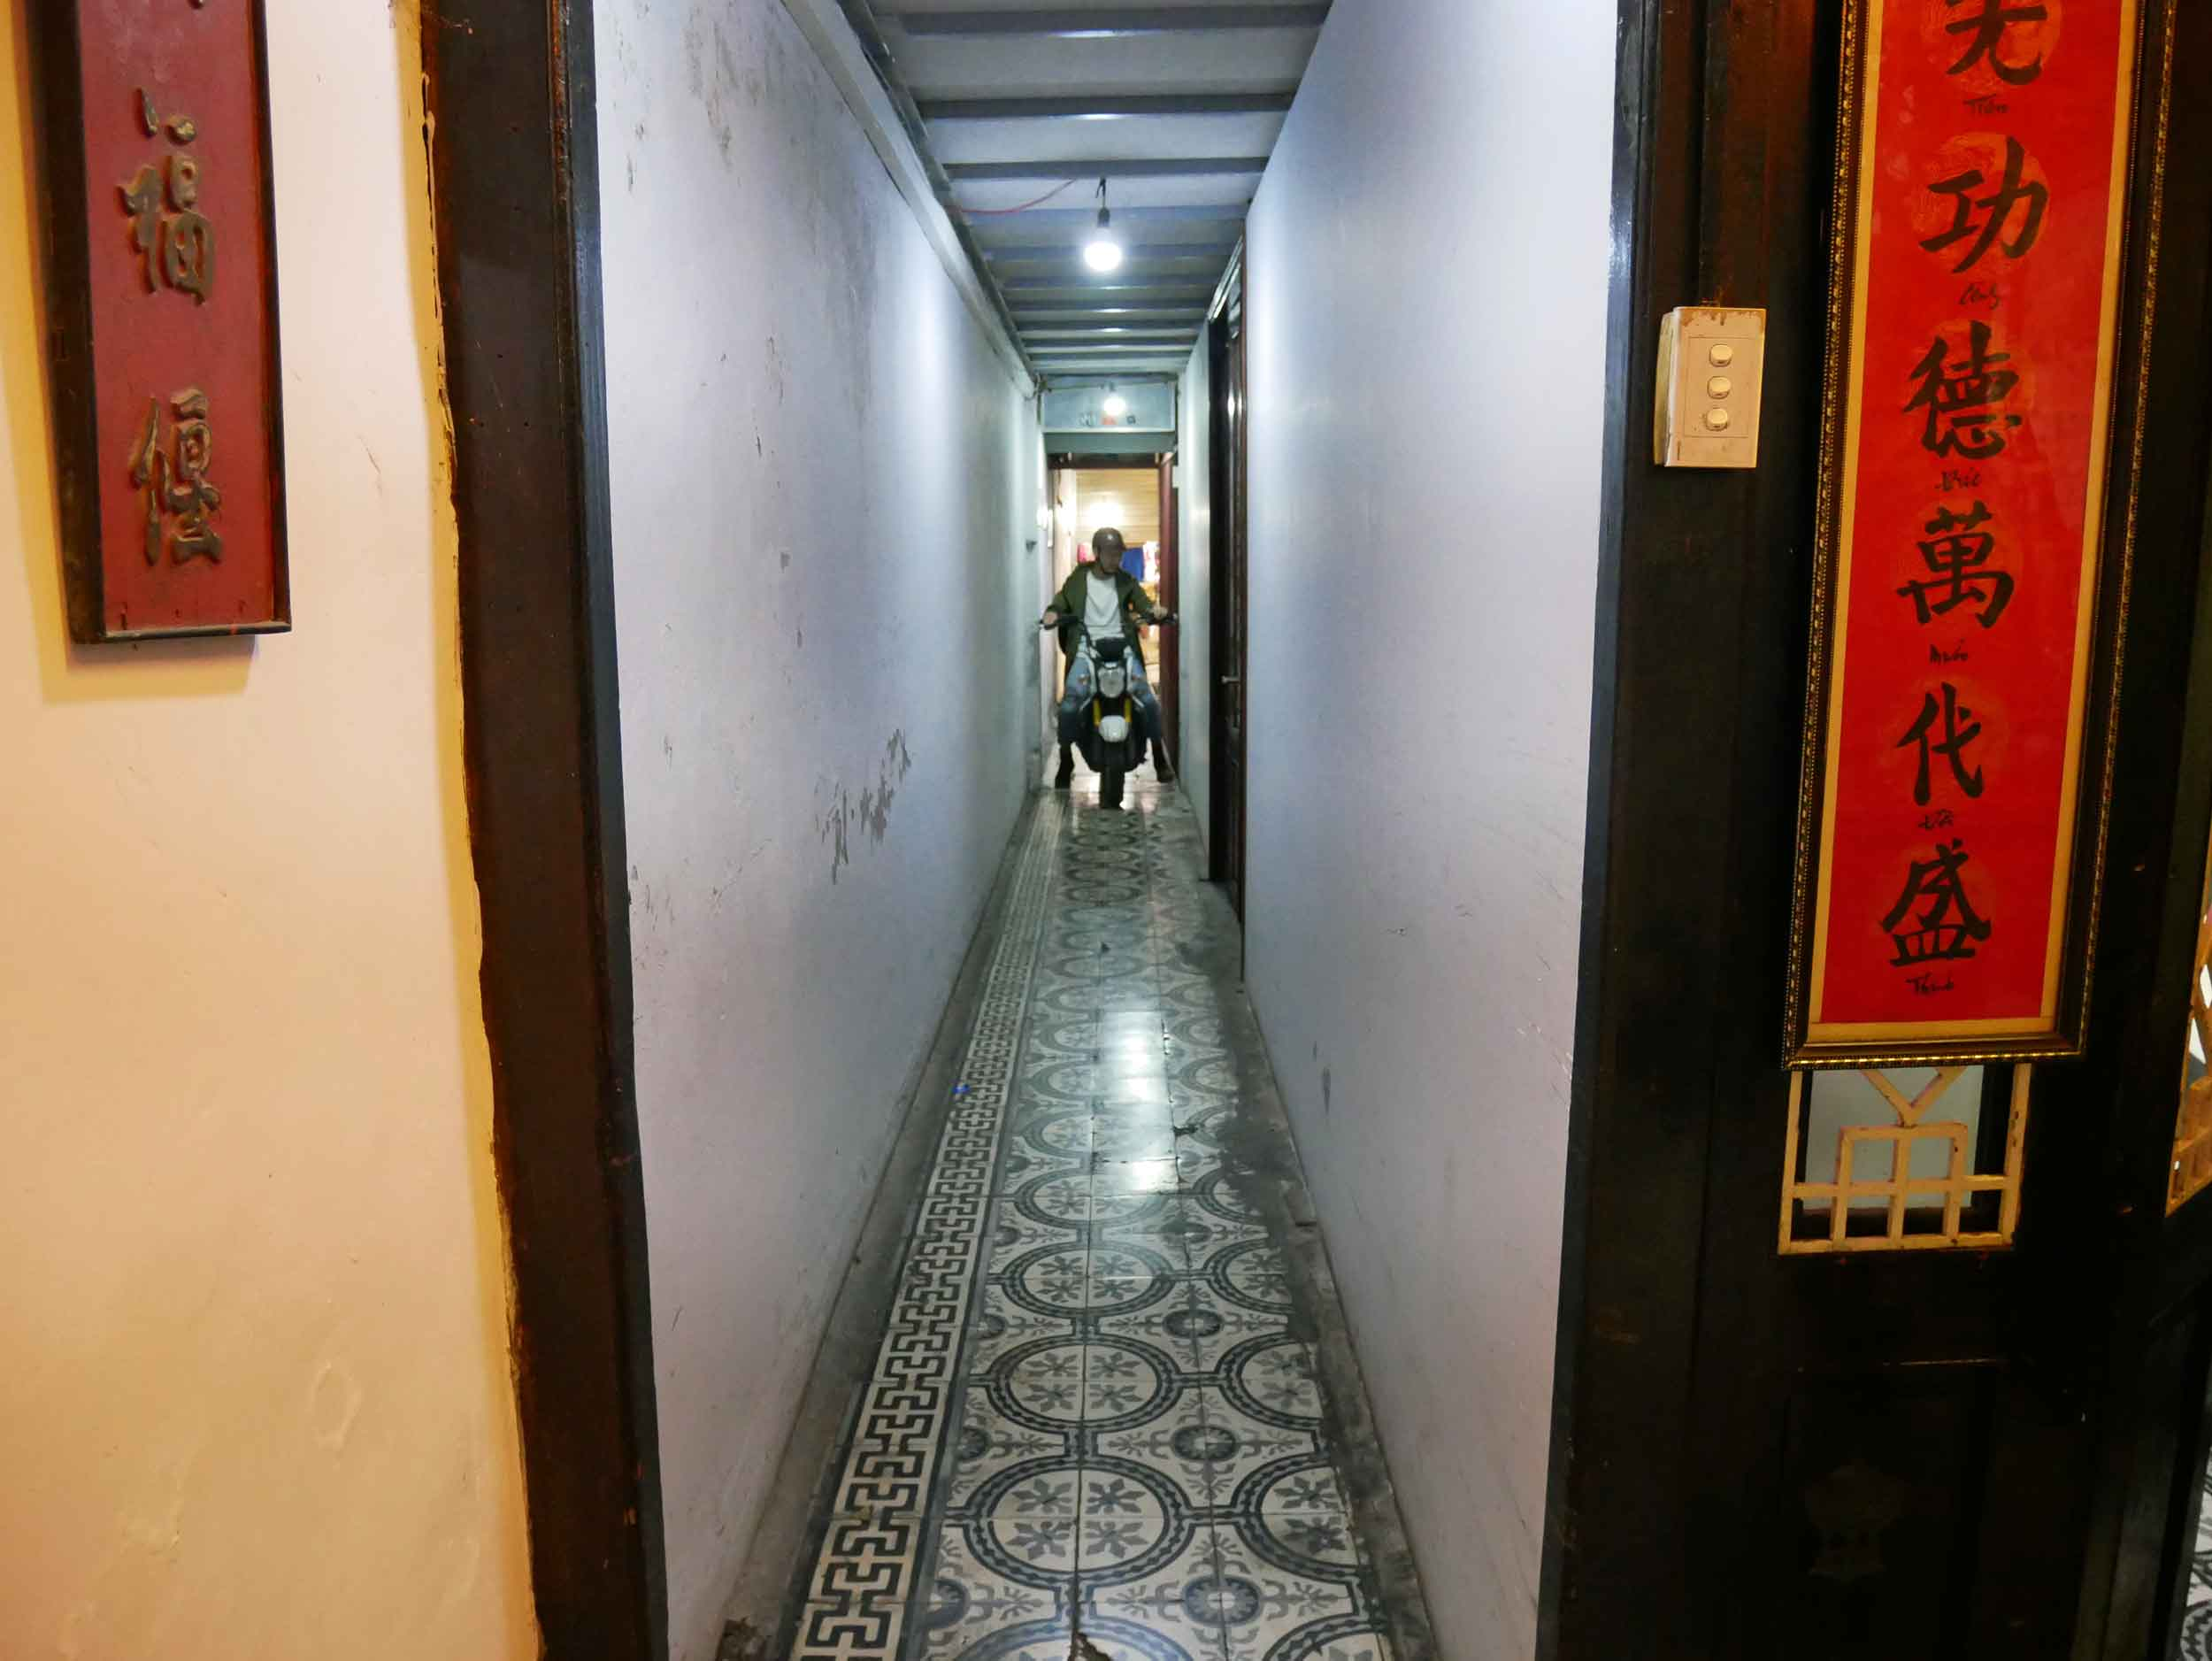 A biker tries to navigate the small alley to the cafe in back where he can park his motorbike.